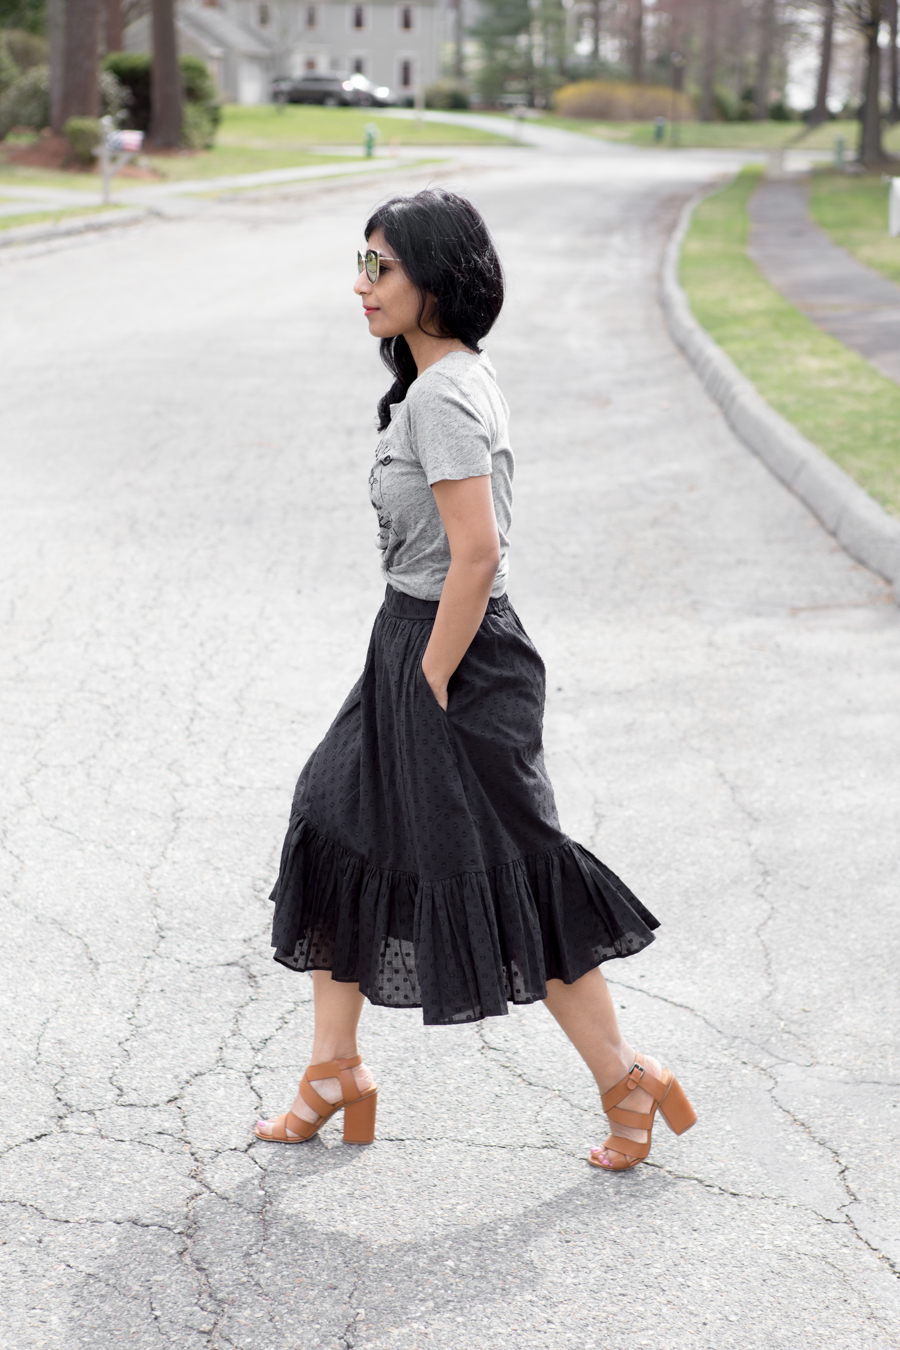 midiskirt, eyelet, block heel sandals, j.crew, petites, petite fashion, knotted tee, casual chic, pineapple clutch, mirror sunglasses